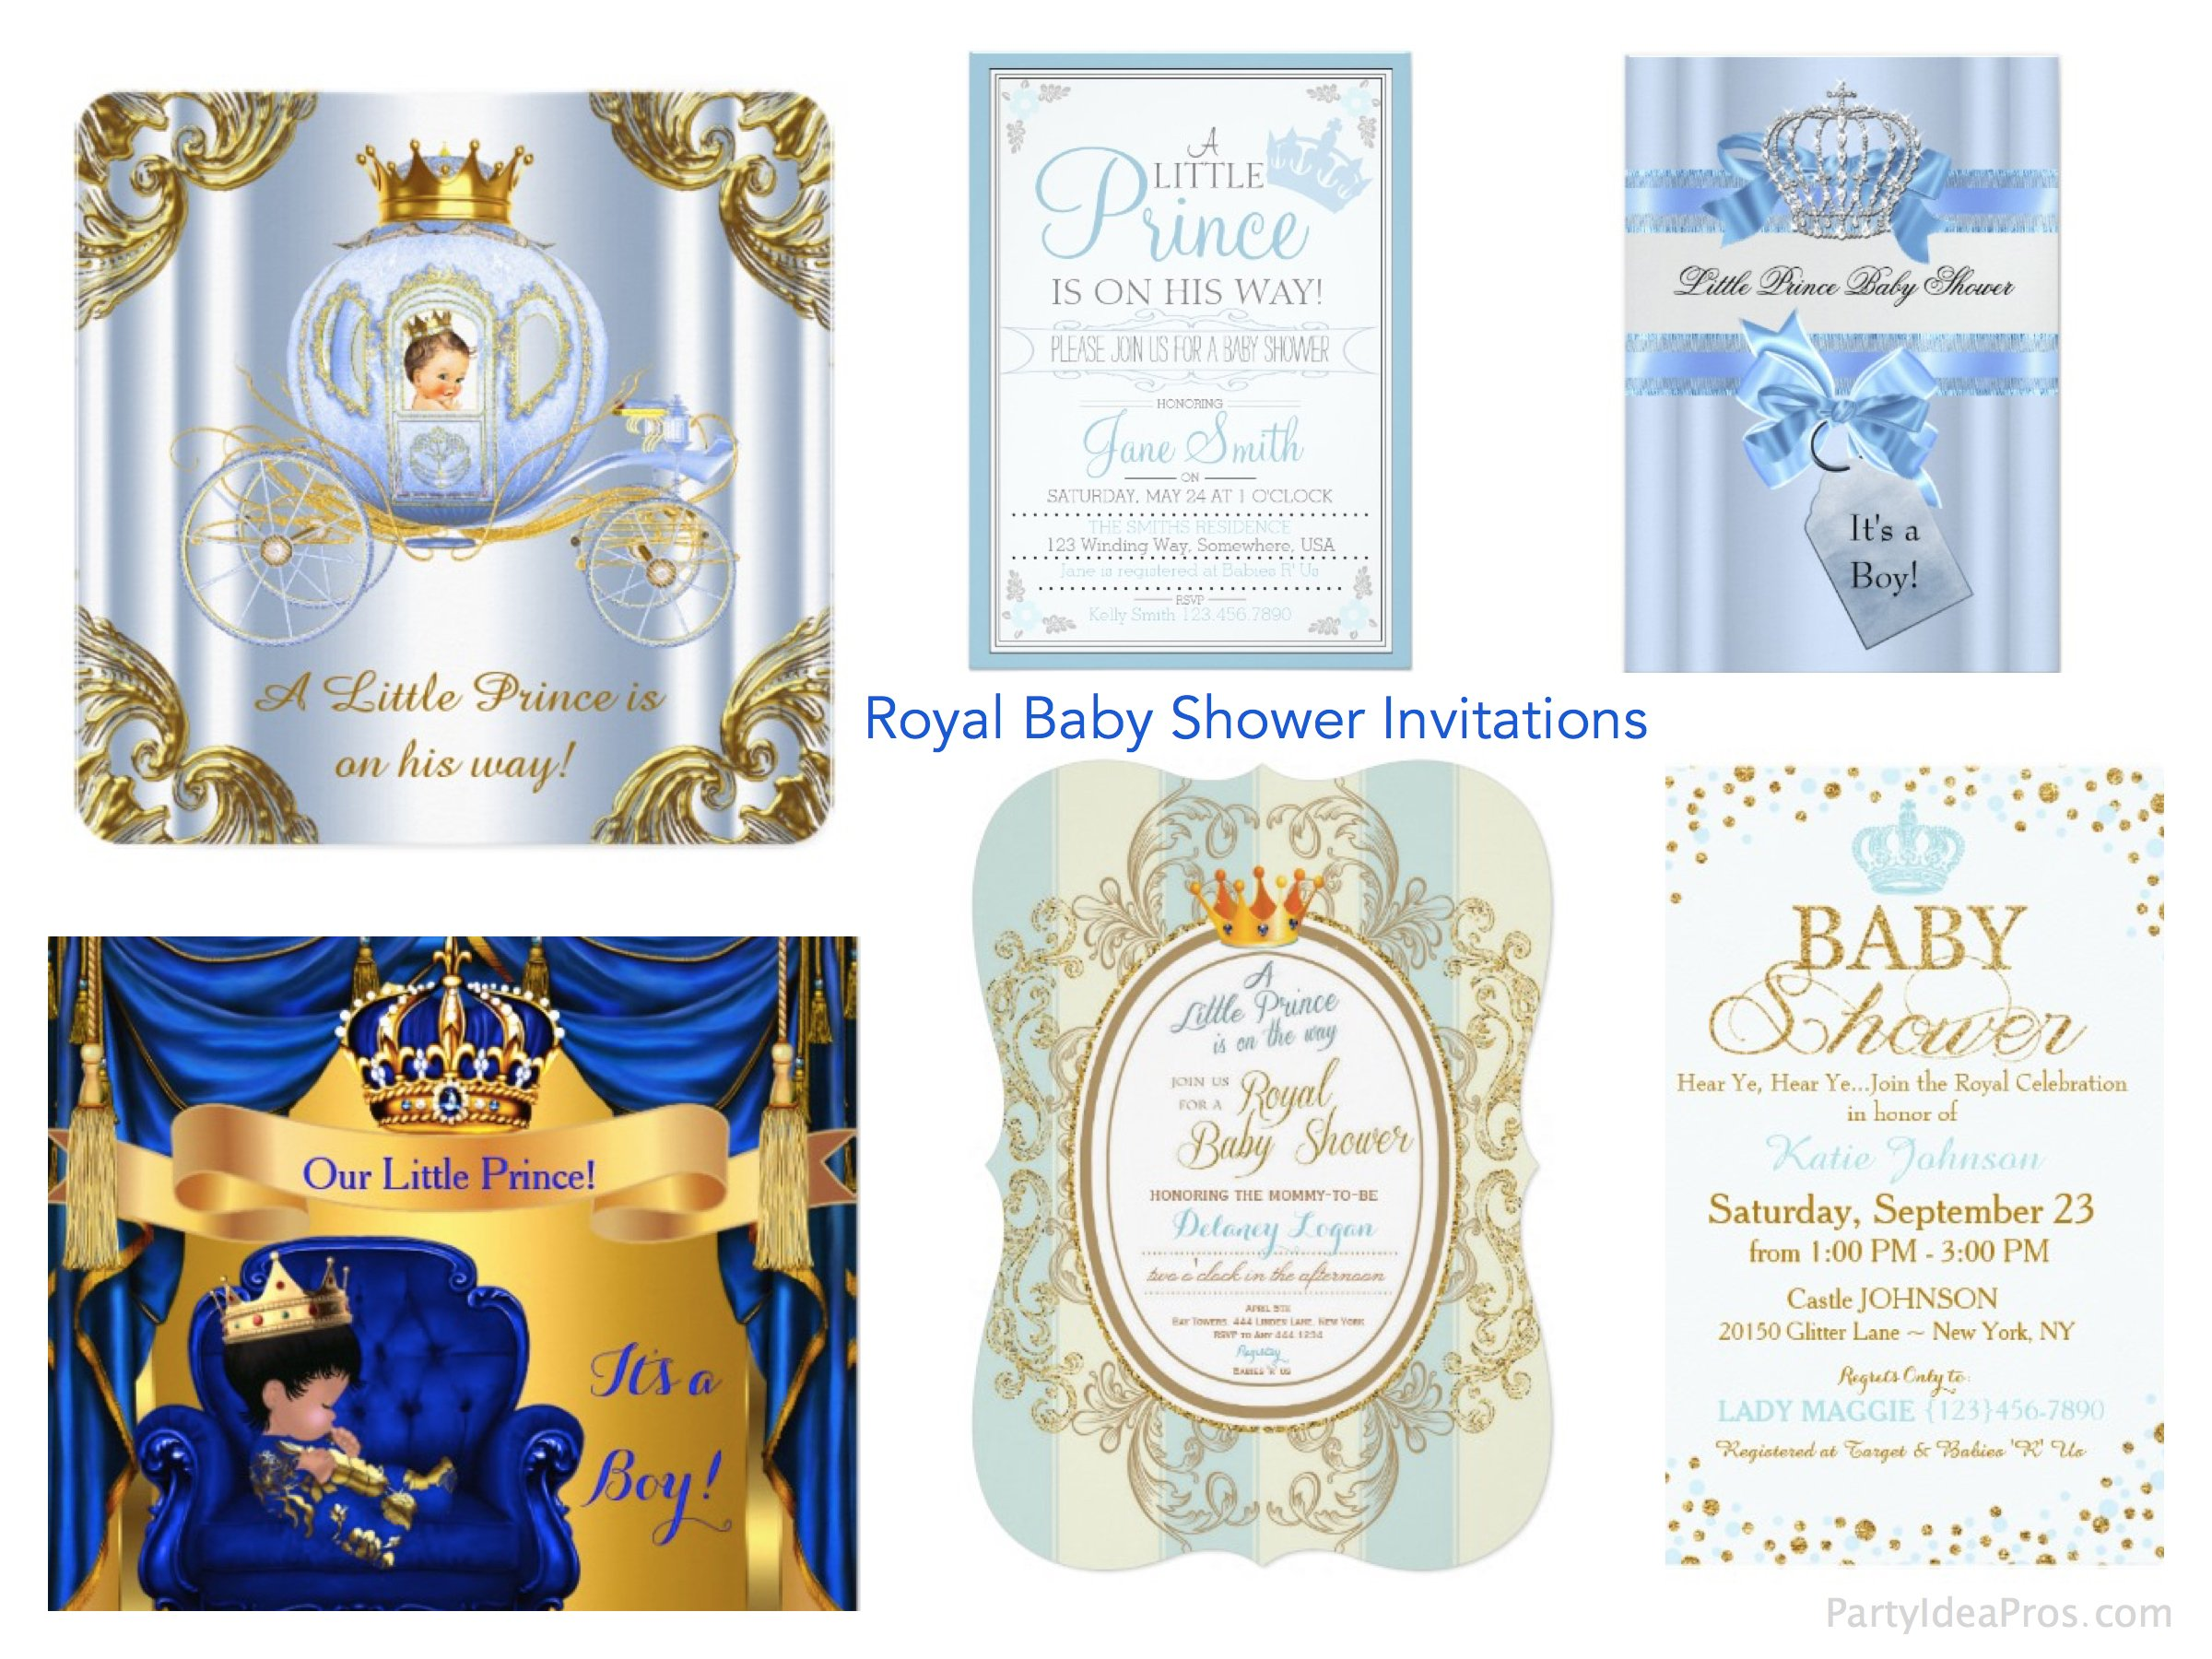 Royal Baby Shower Invitations